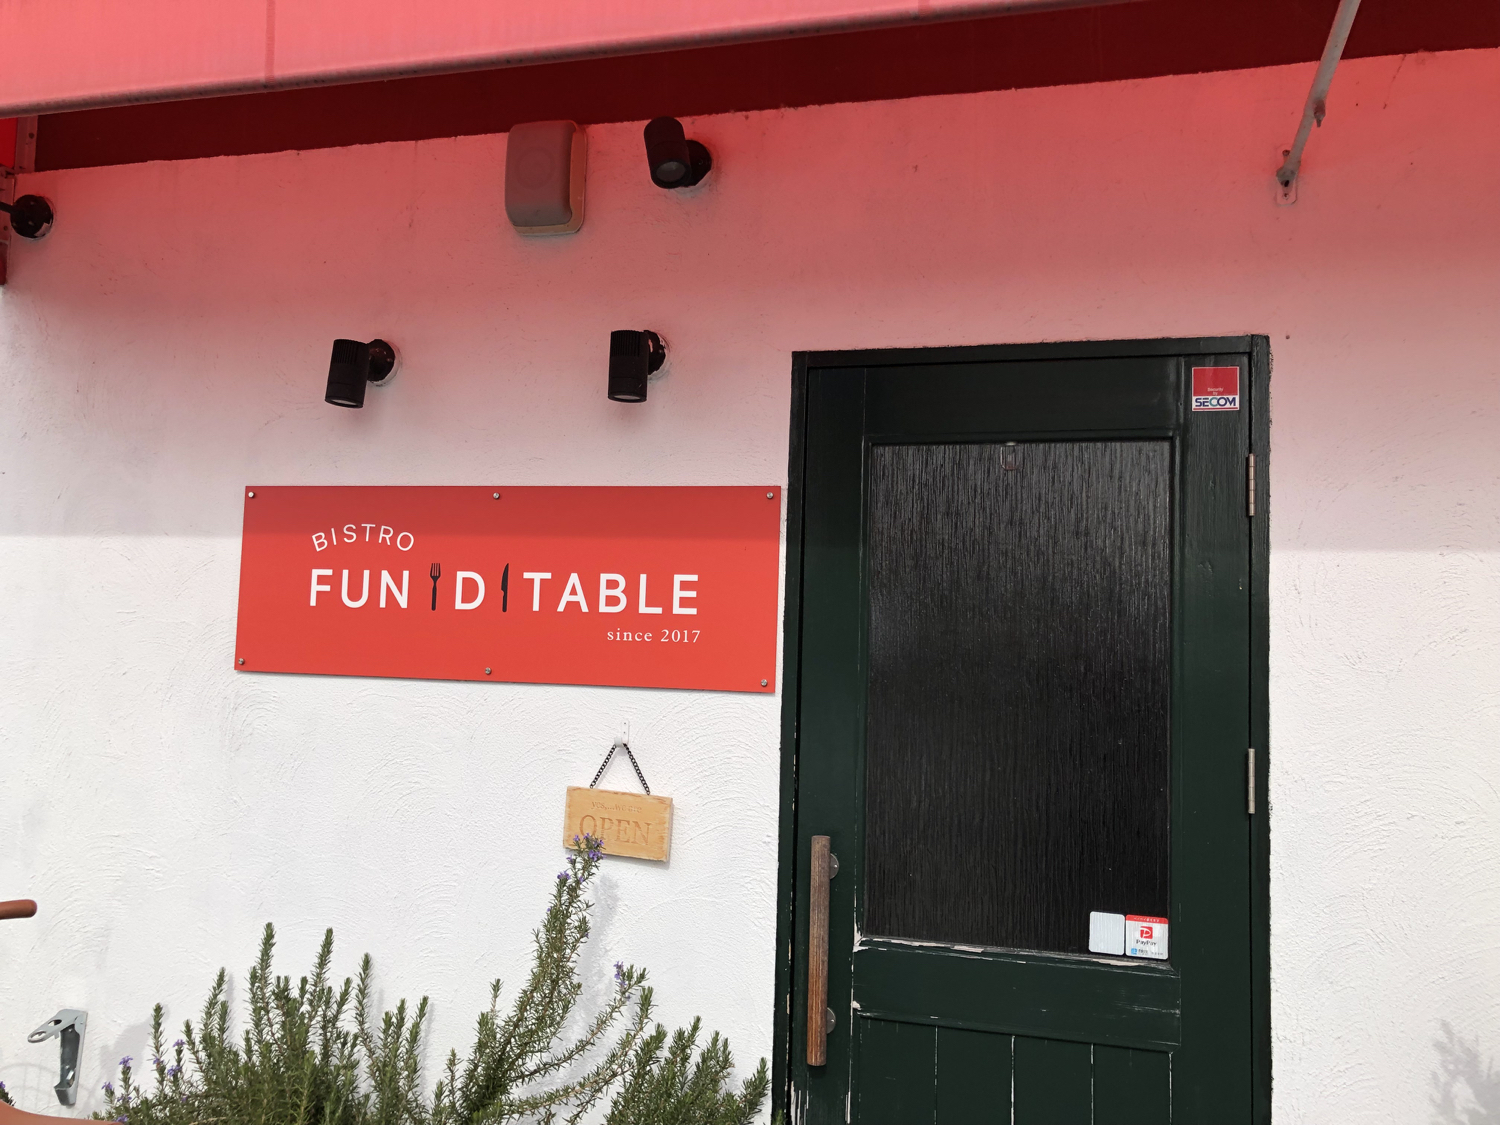 FUN D TABLE